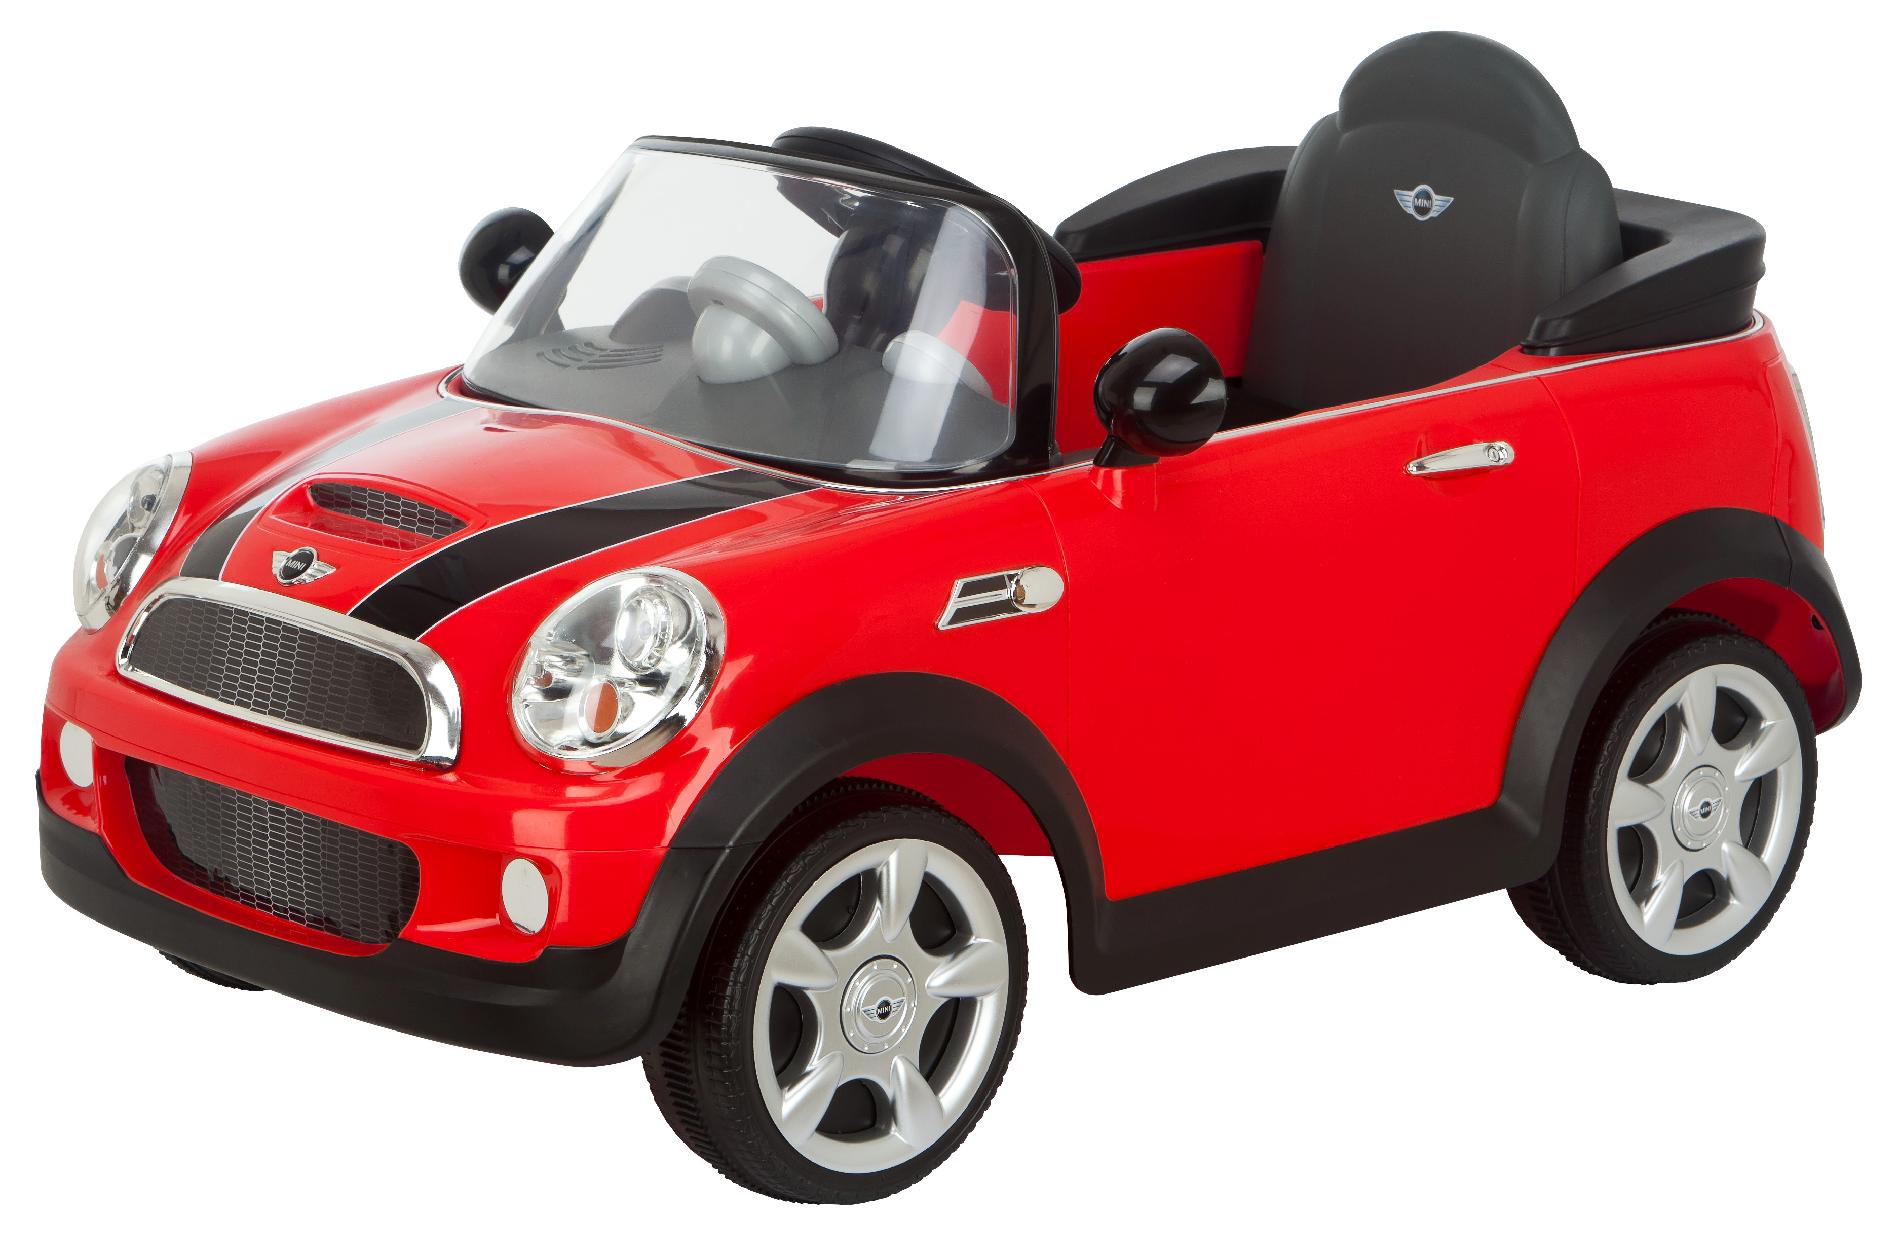 kidtrax mini cooper 6v red toys games ride on toys safety powered vehicles